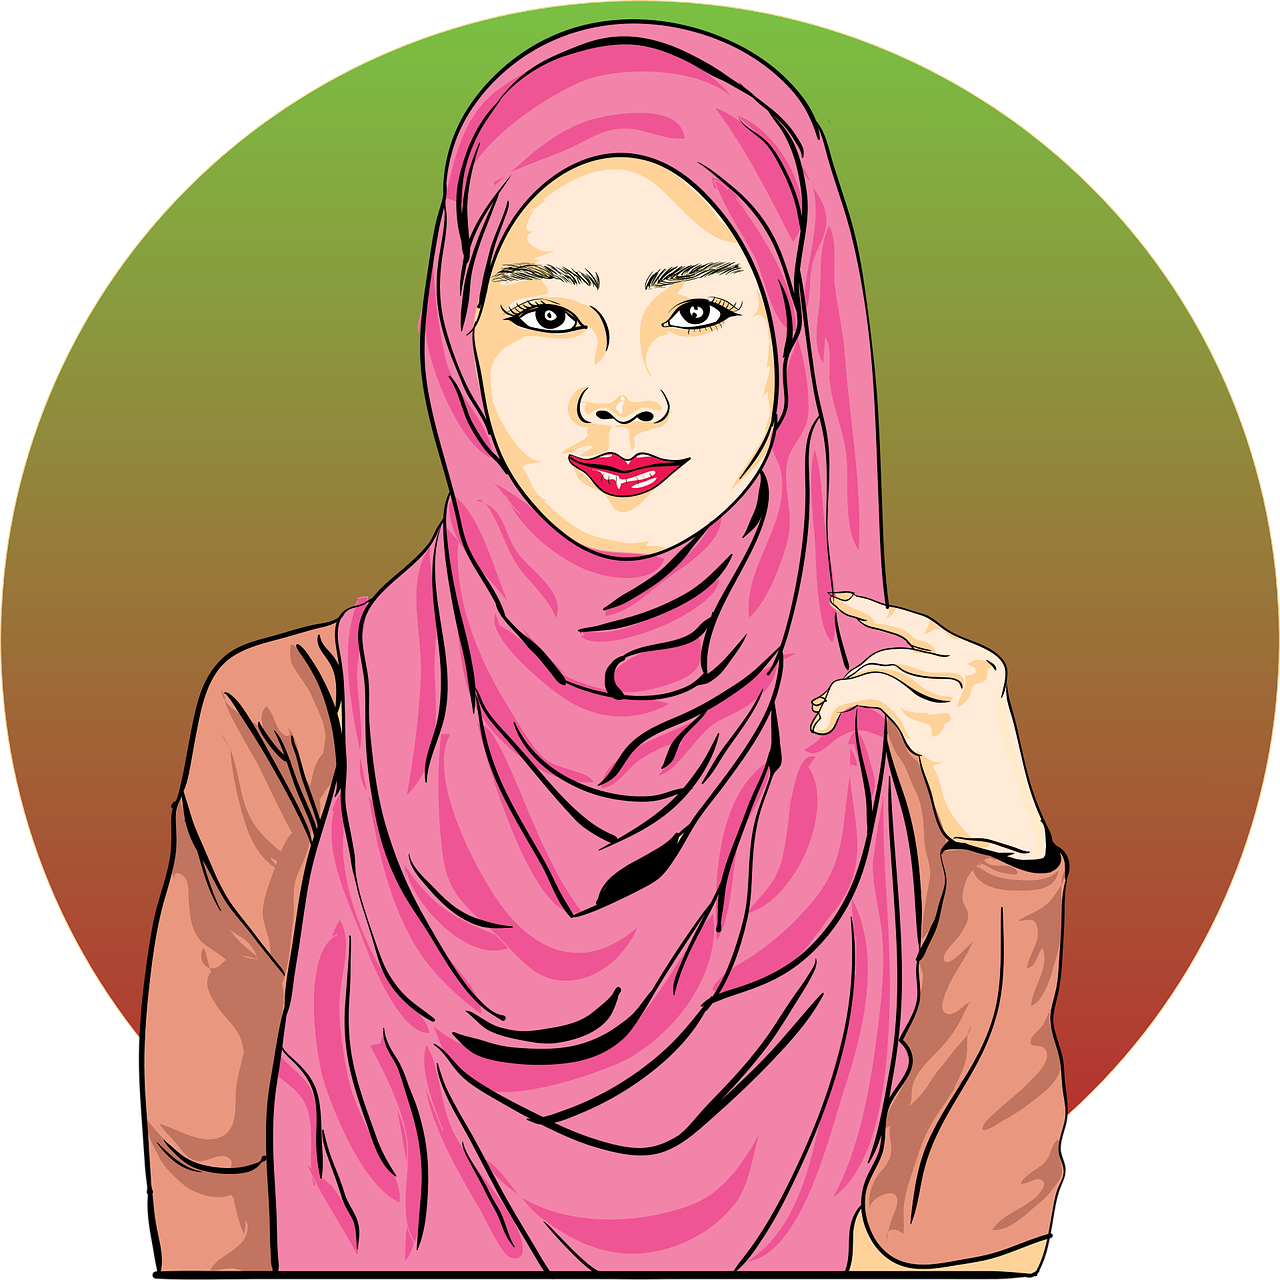 Hijab Muslim Women Free Vector Graphic On Pixabay